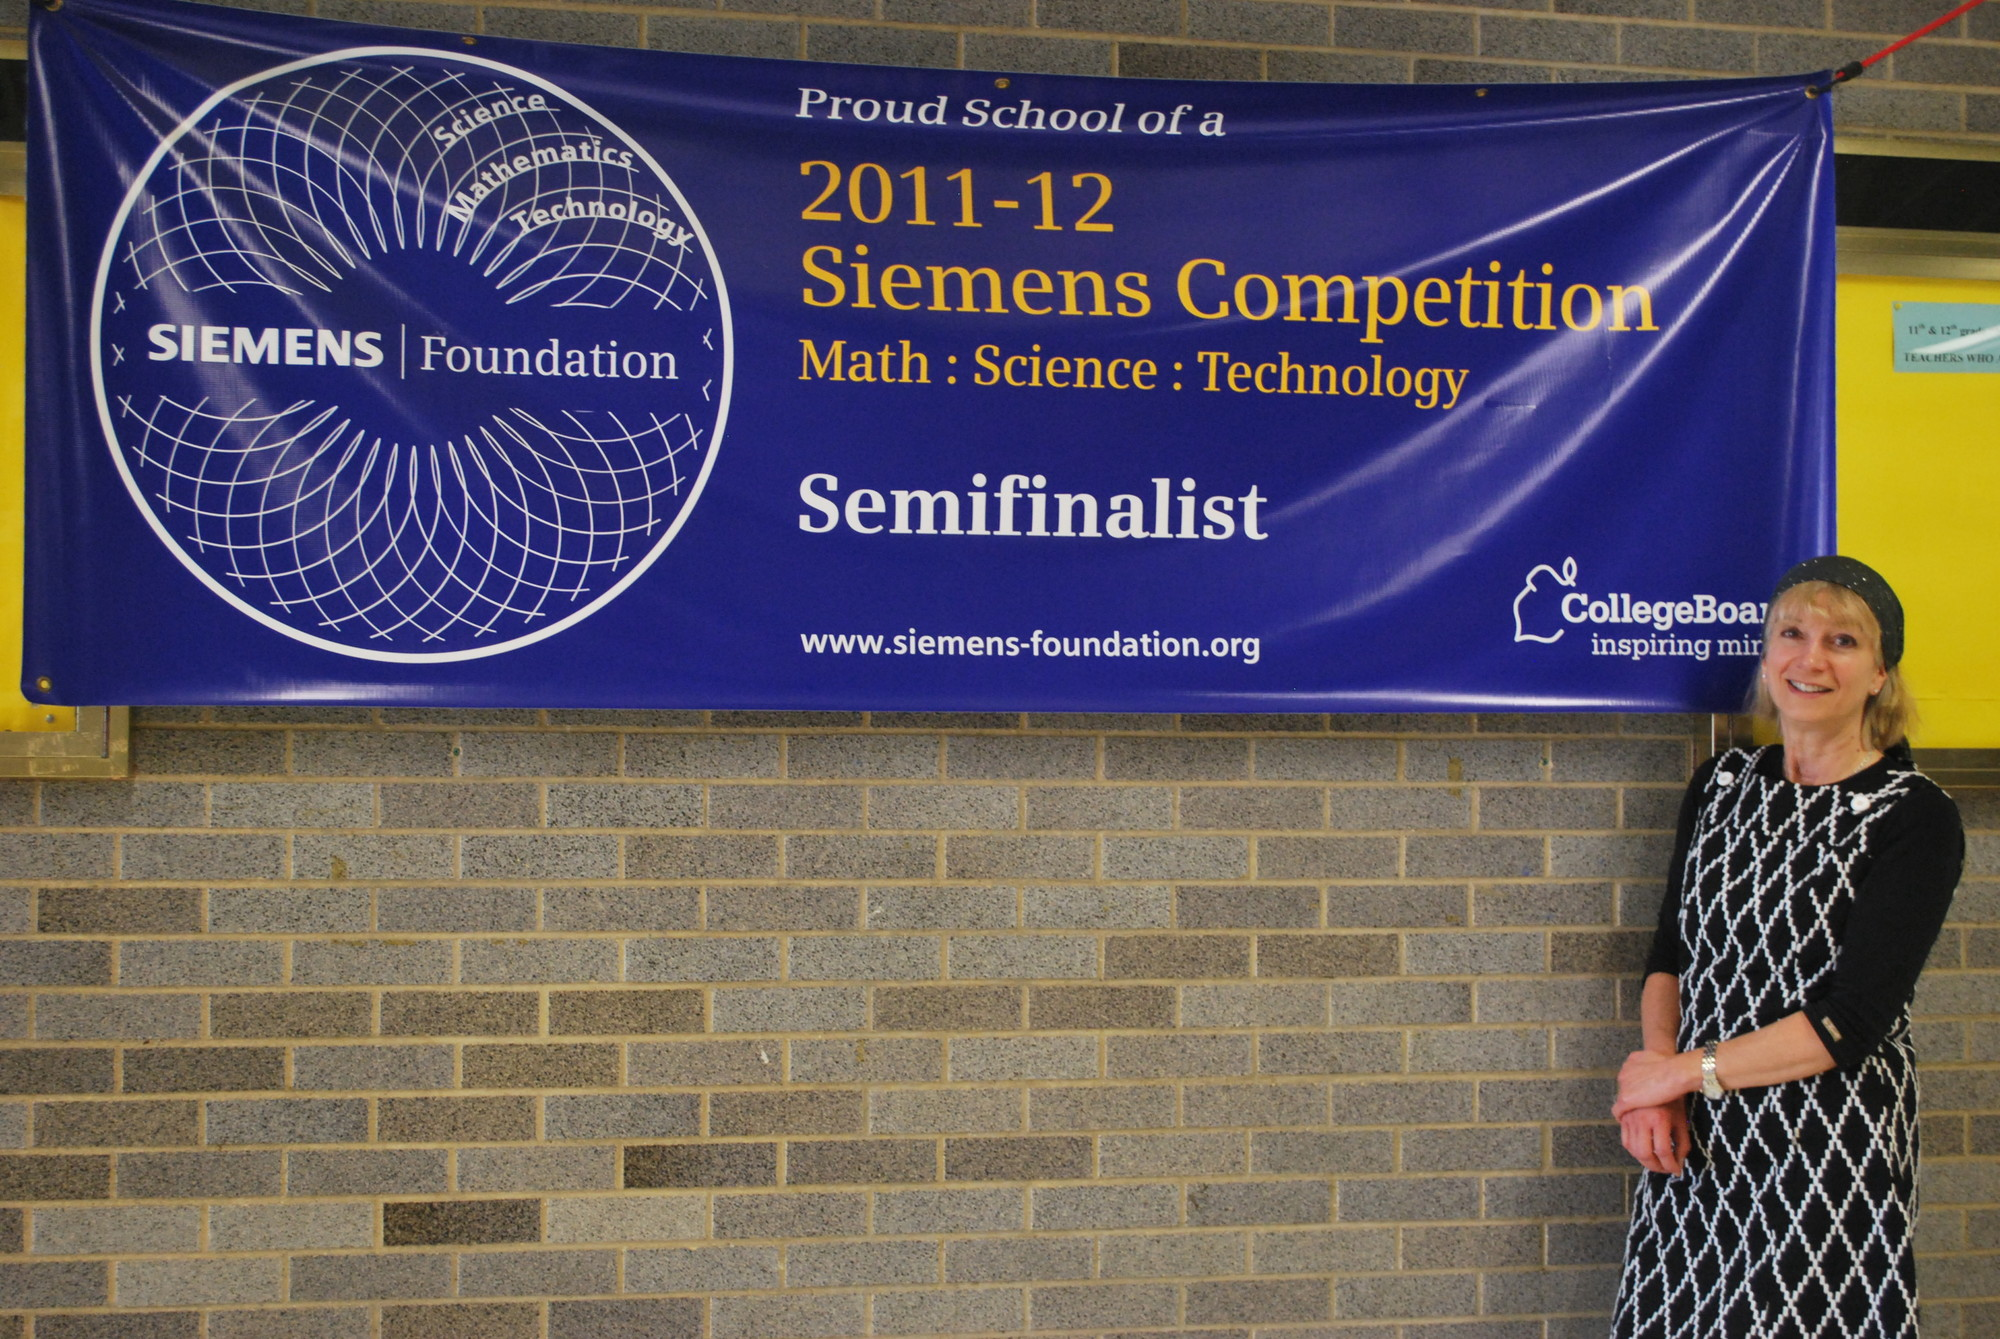 Lawrence High School chemistry teacher Rebecca Isseroff guides Five Towns students through high level science projects to compete in prestigious competitions such as Siemens.